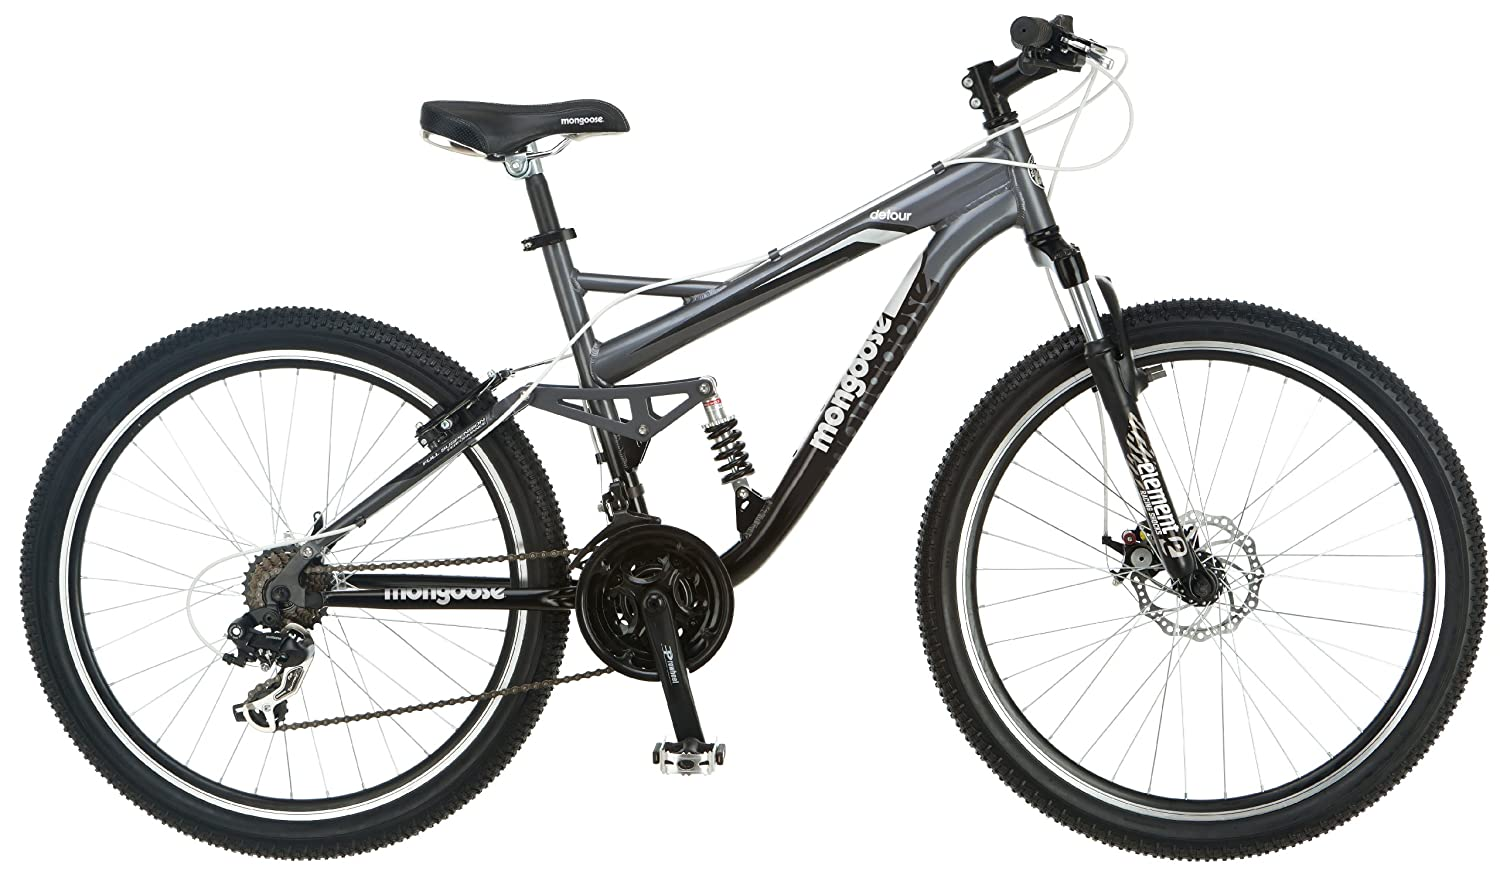 Mongoose Detour Full Suspension Bicycle 26 Inch